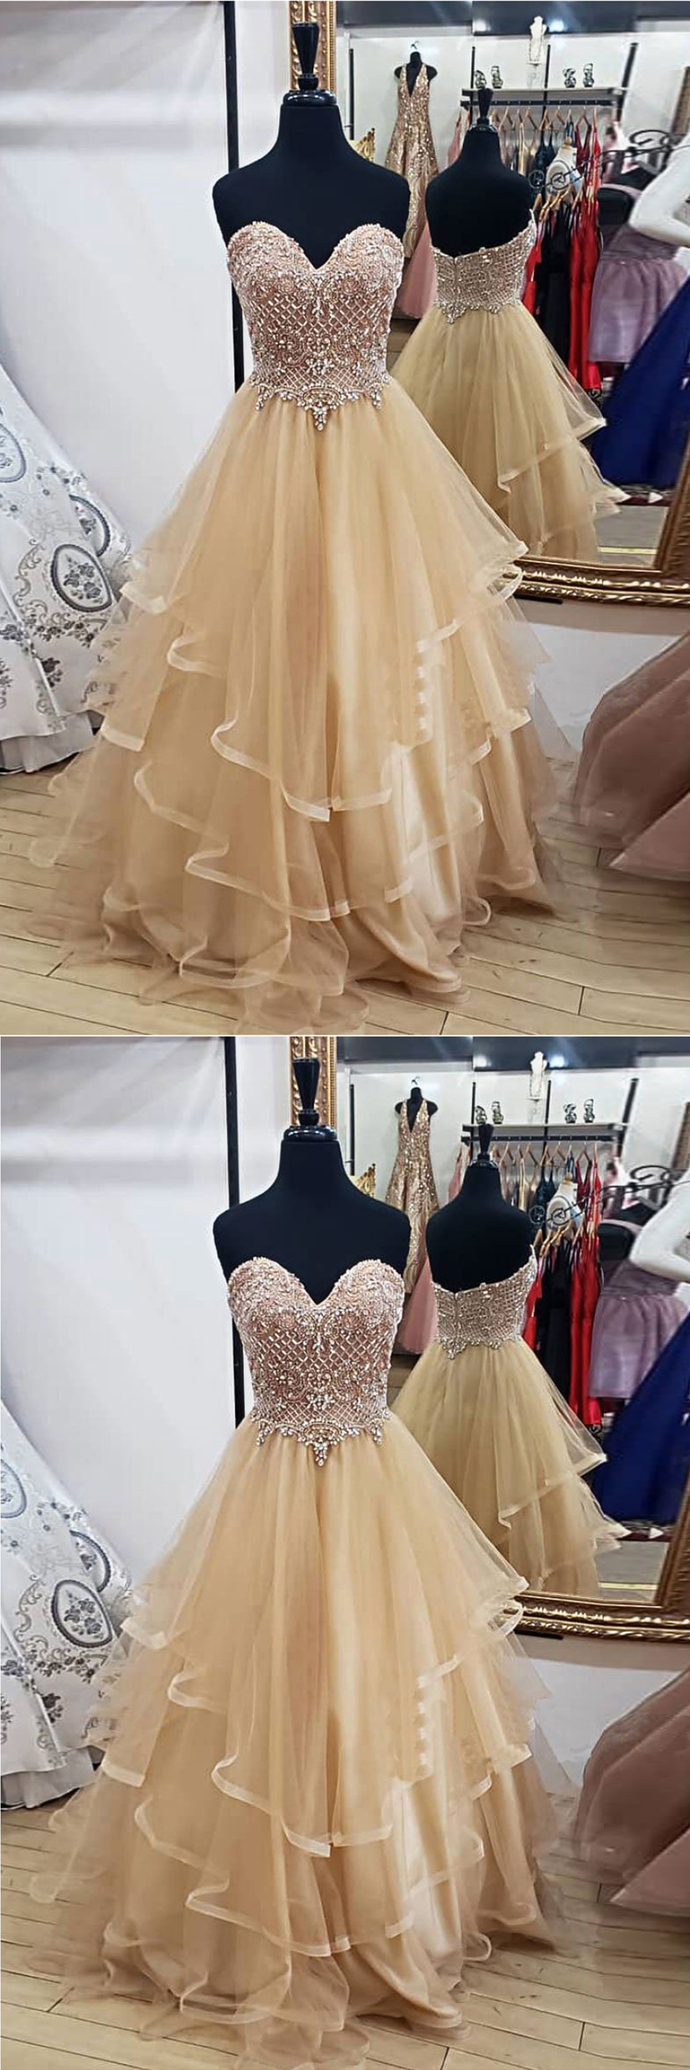 Tulle Sweetheart Long Prom Dress with Beading, Strapless Formal Dress BD2483